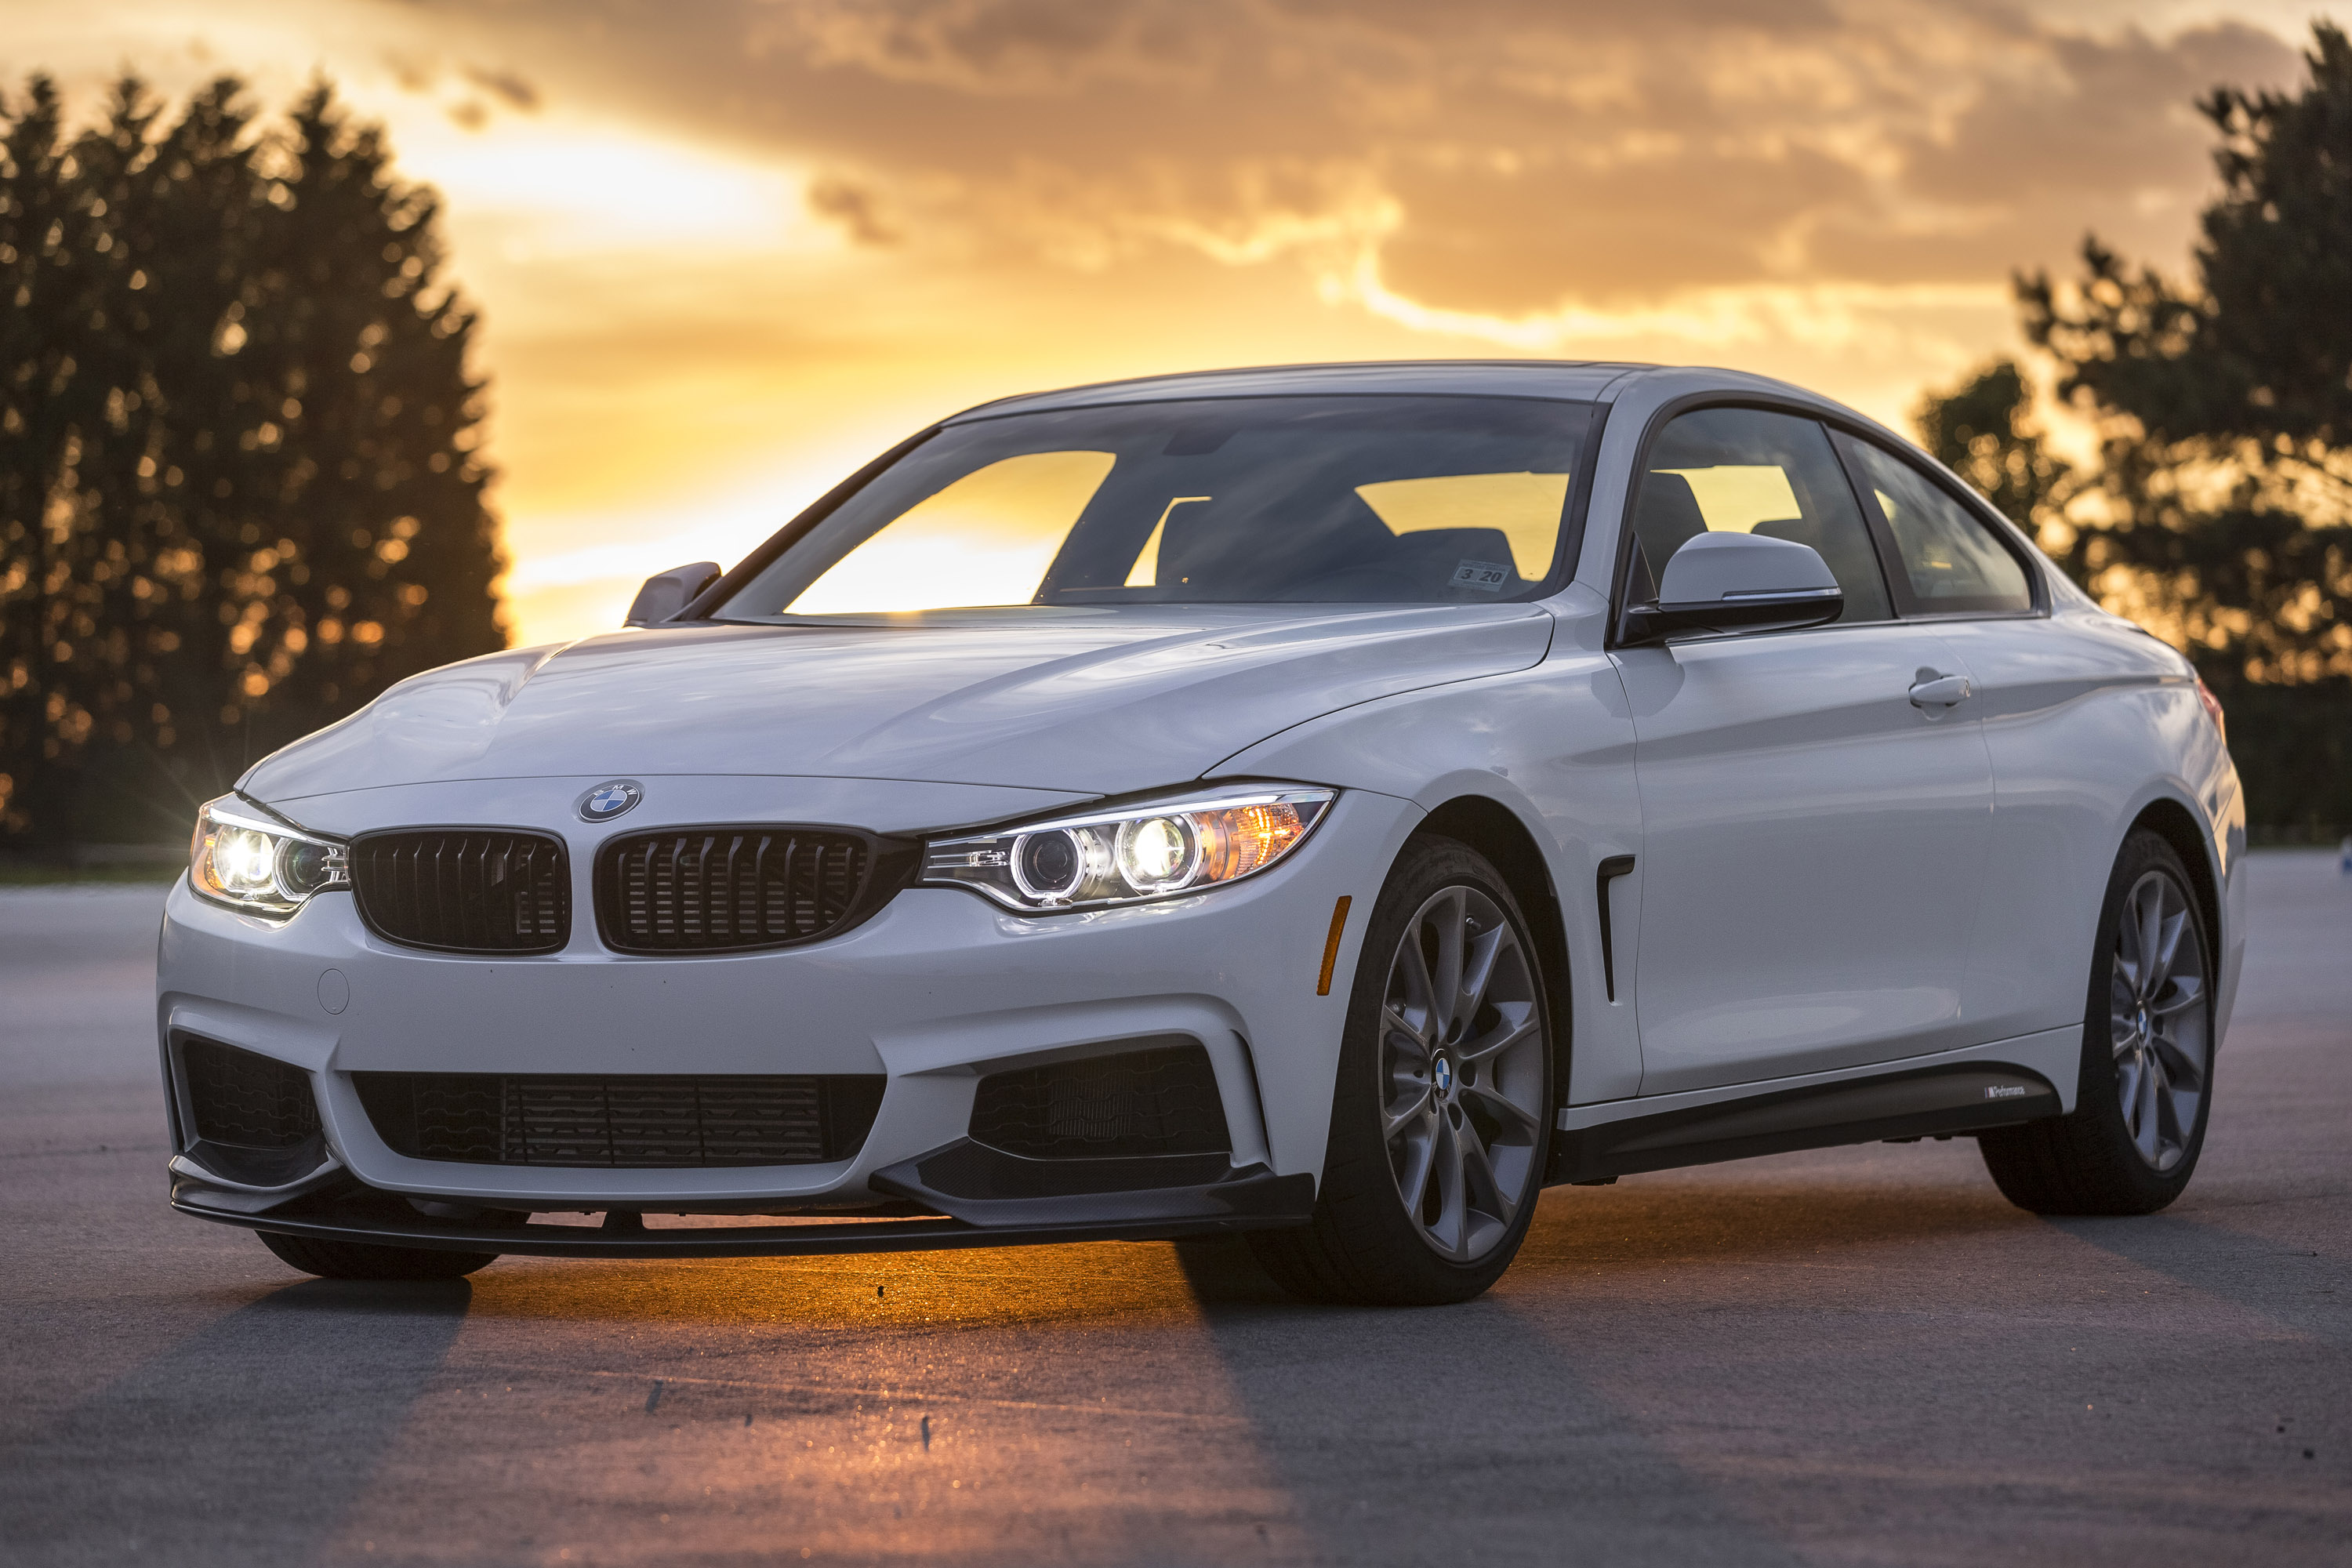 Bmw 435i zhp coupe 2016 pictures information amp specs - 2016 Bmw 435i Zhp Coupe Thumbnail Photo 90663